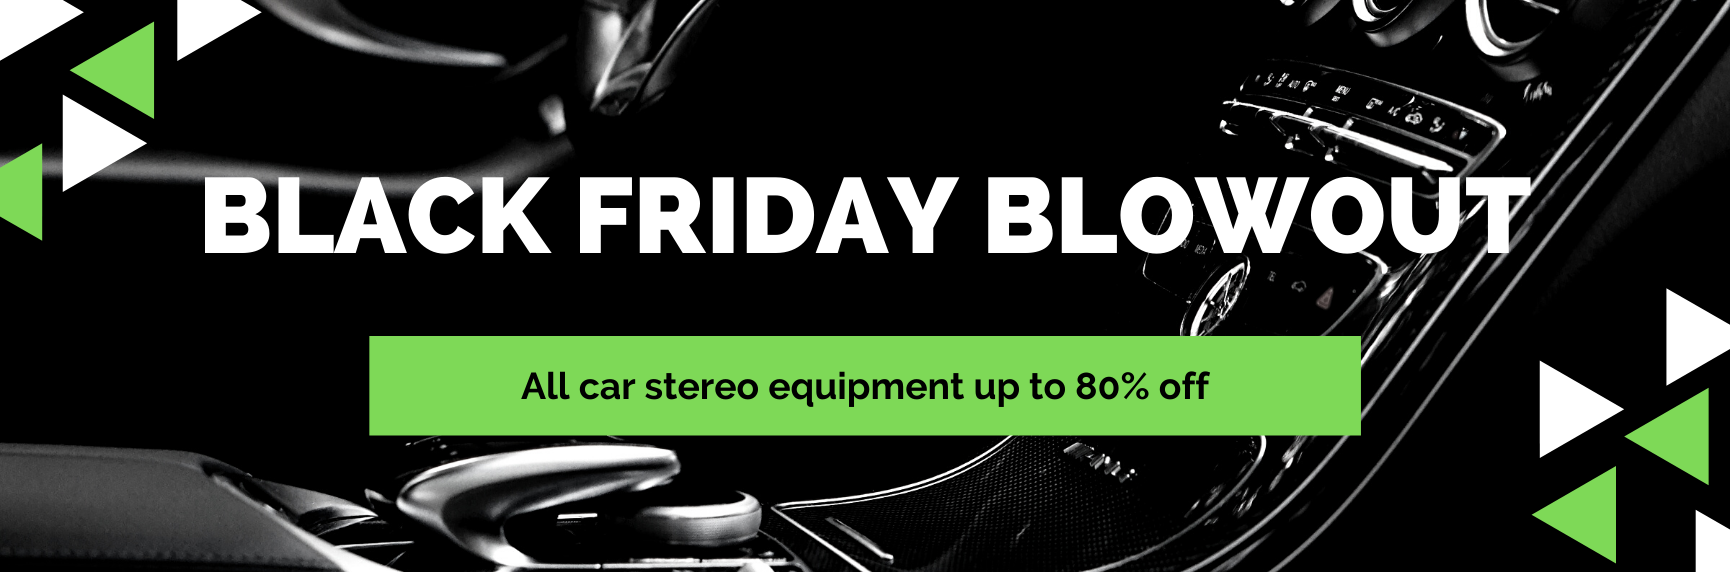 Black Friday Blowout - All car stereo equipment up to 80% off